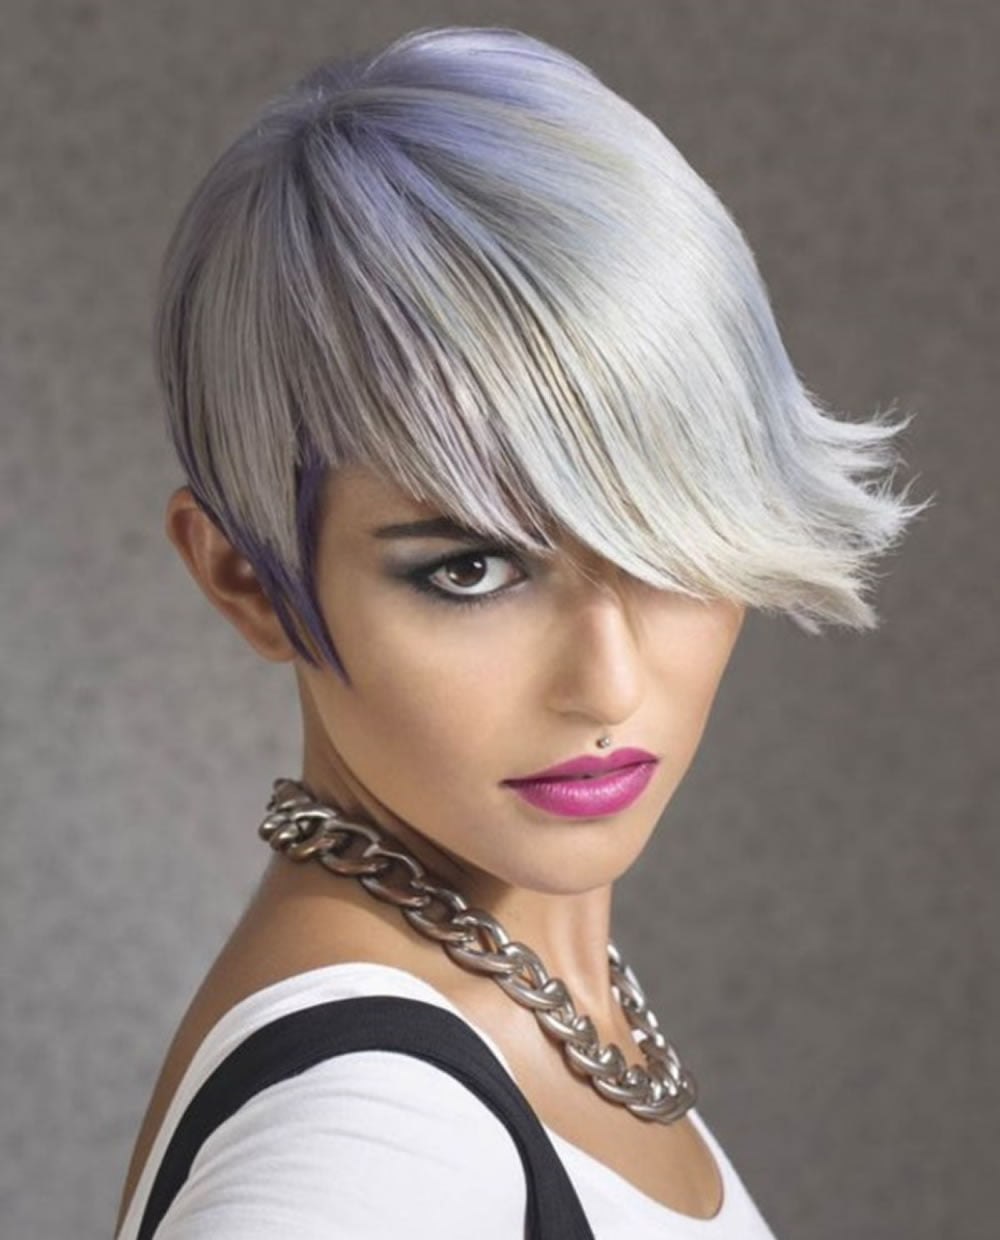 Short Haircut With Very Long Bangs For Women Hairstyles